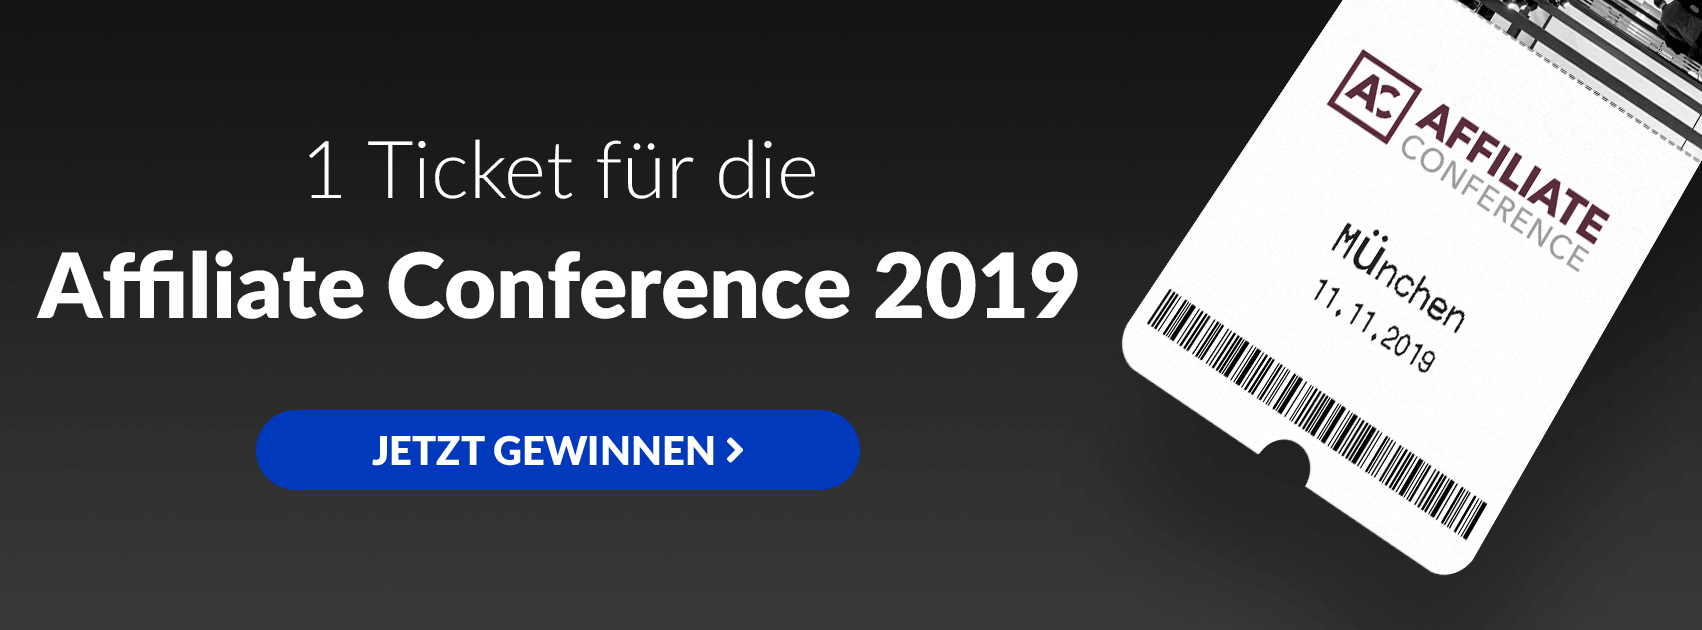 GrowthUp - Verlosung Affiliate Conference